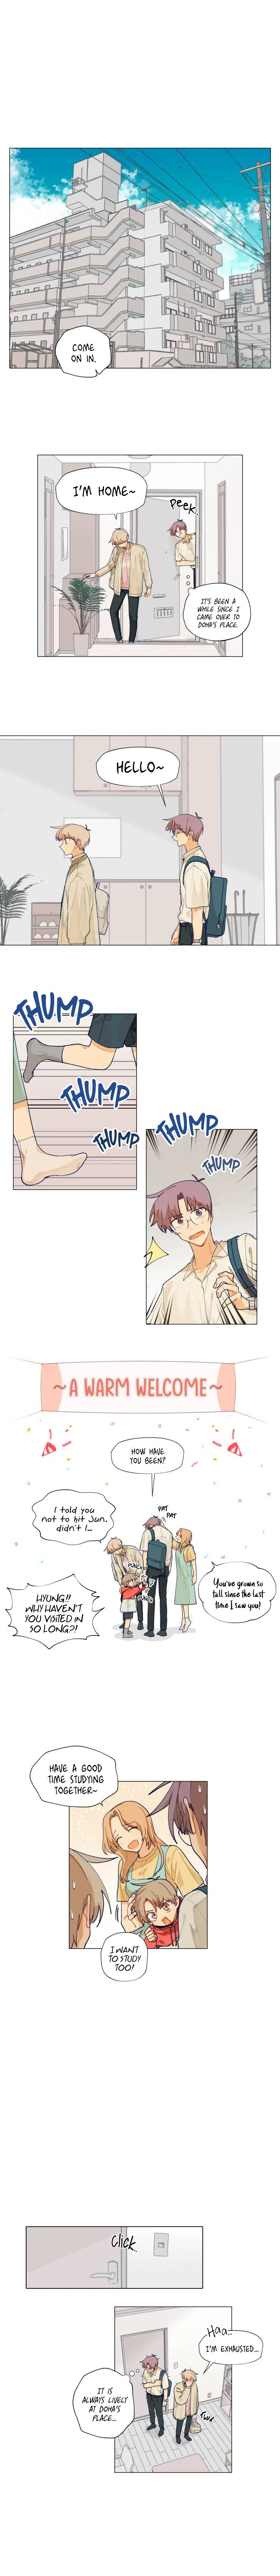 For you 99% - chapter 12 - #2